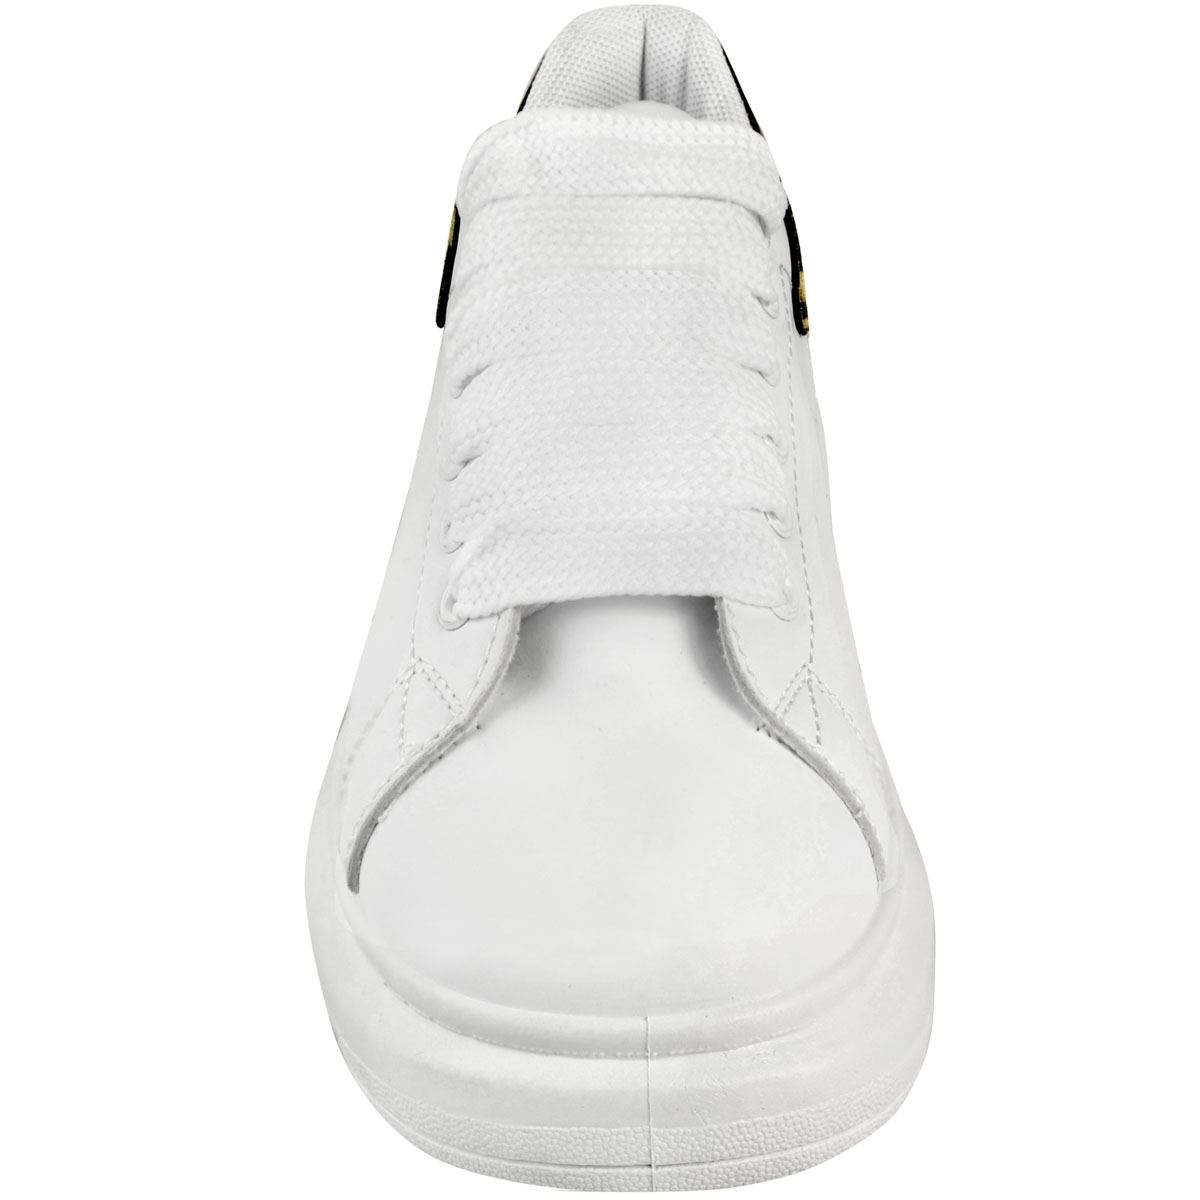 Womens Ladies White Black Chunky Oversize Trainers Sneakers Platform Sole Size